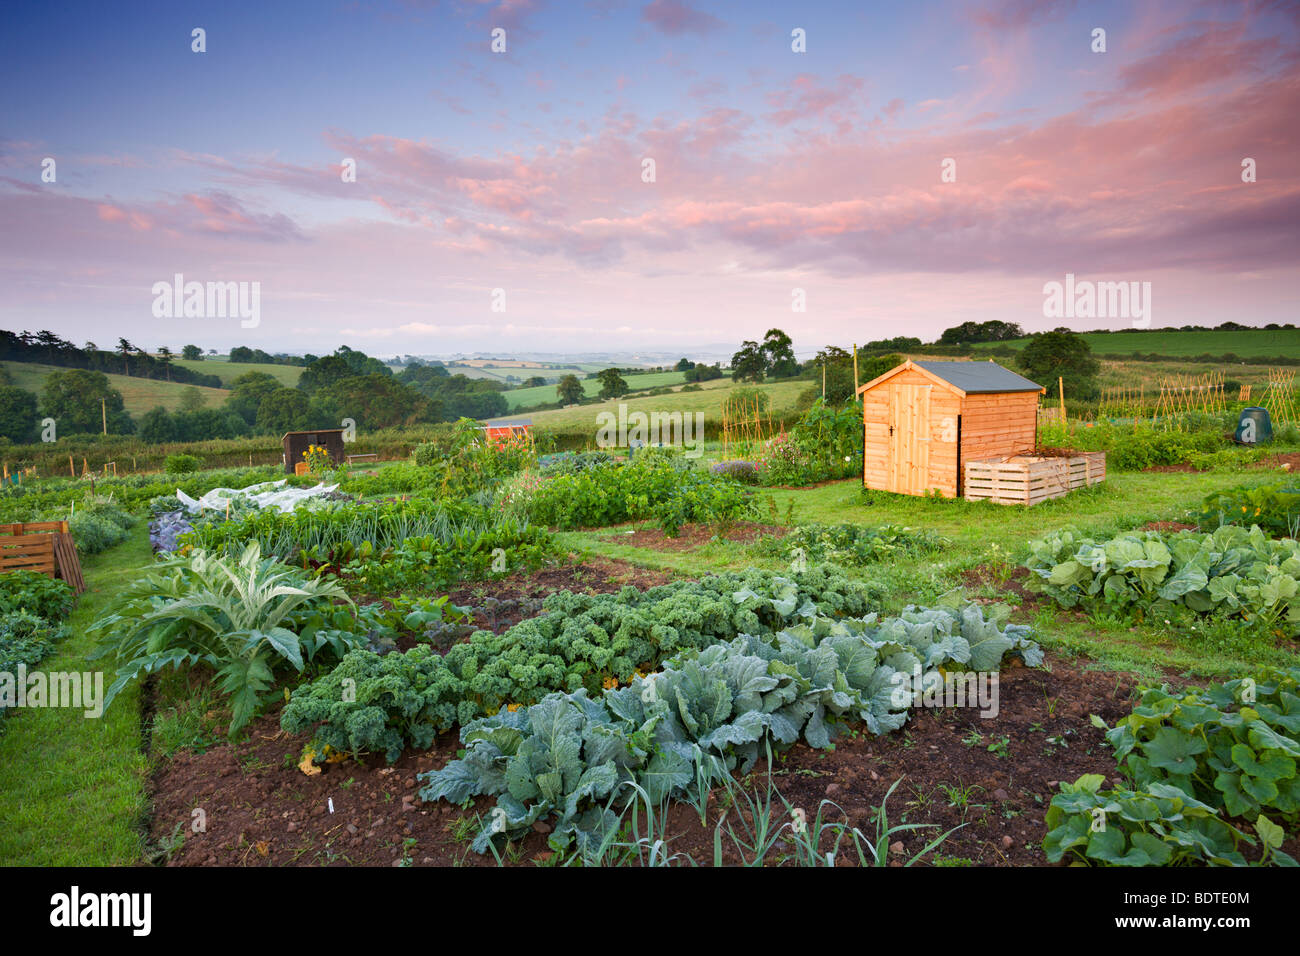 Vegetables growing on a rural Allotment, Morchard Bishop, Devon, England. Summer (July) 2009 - Stock Image